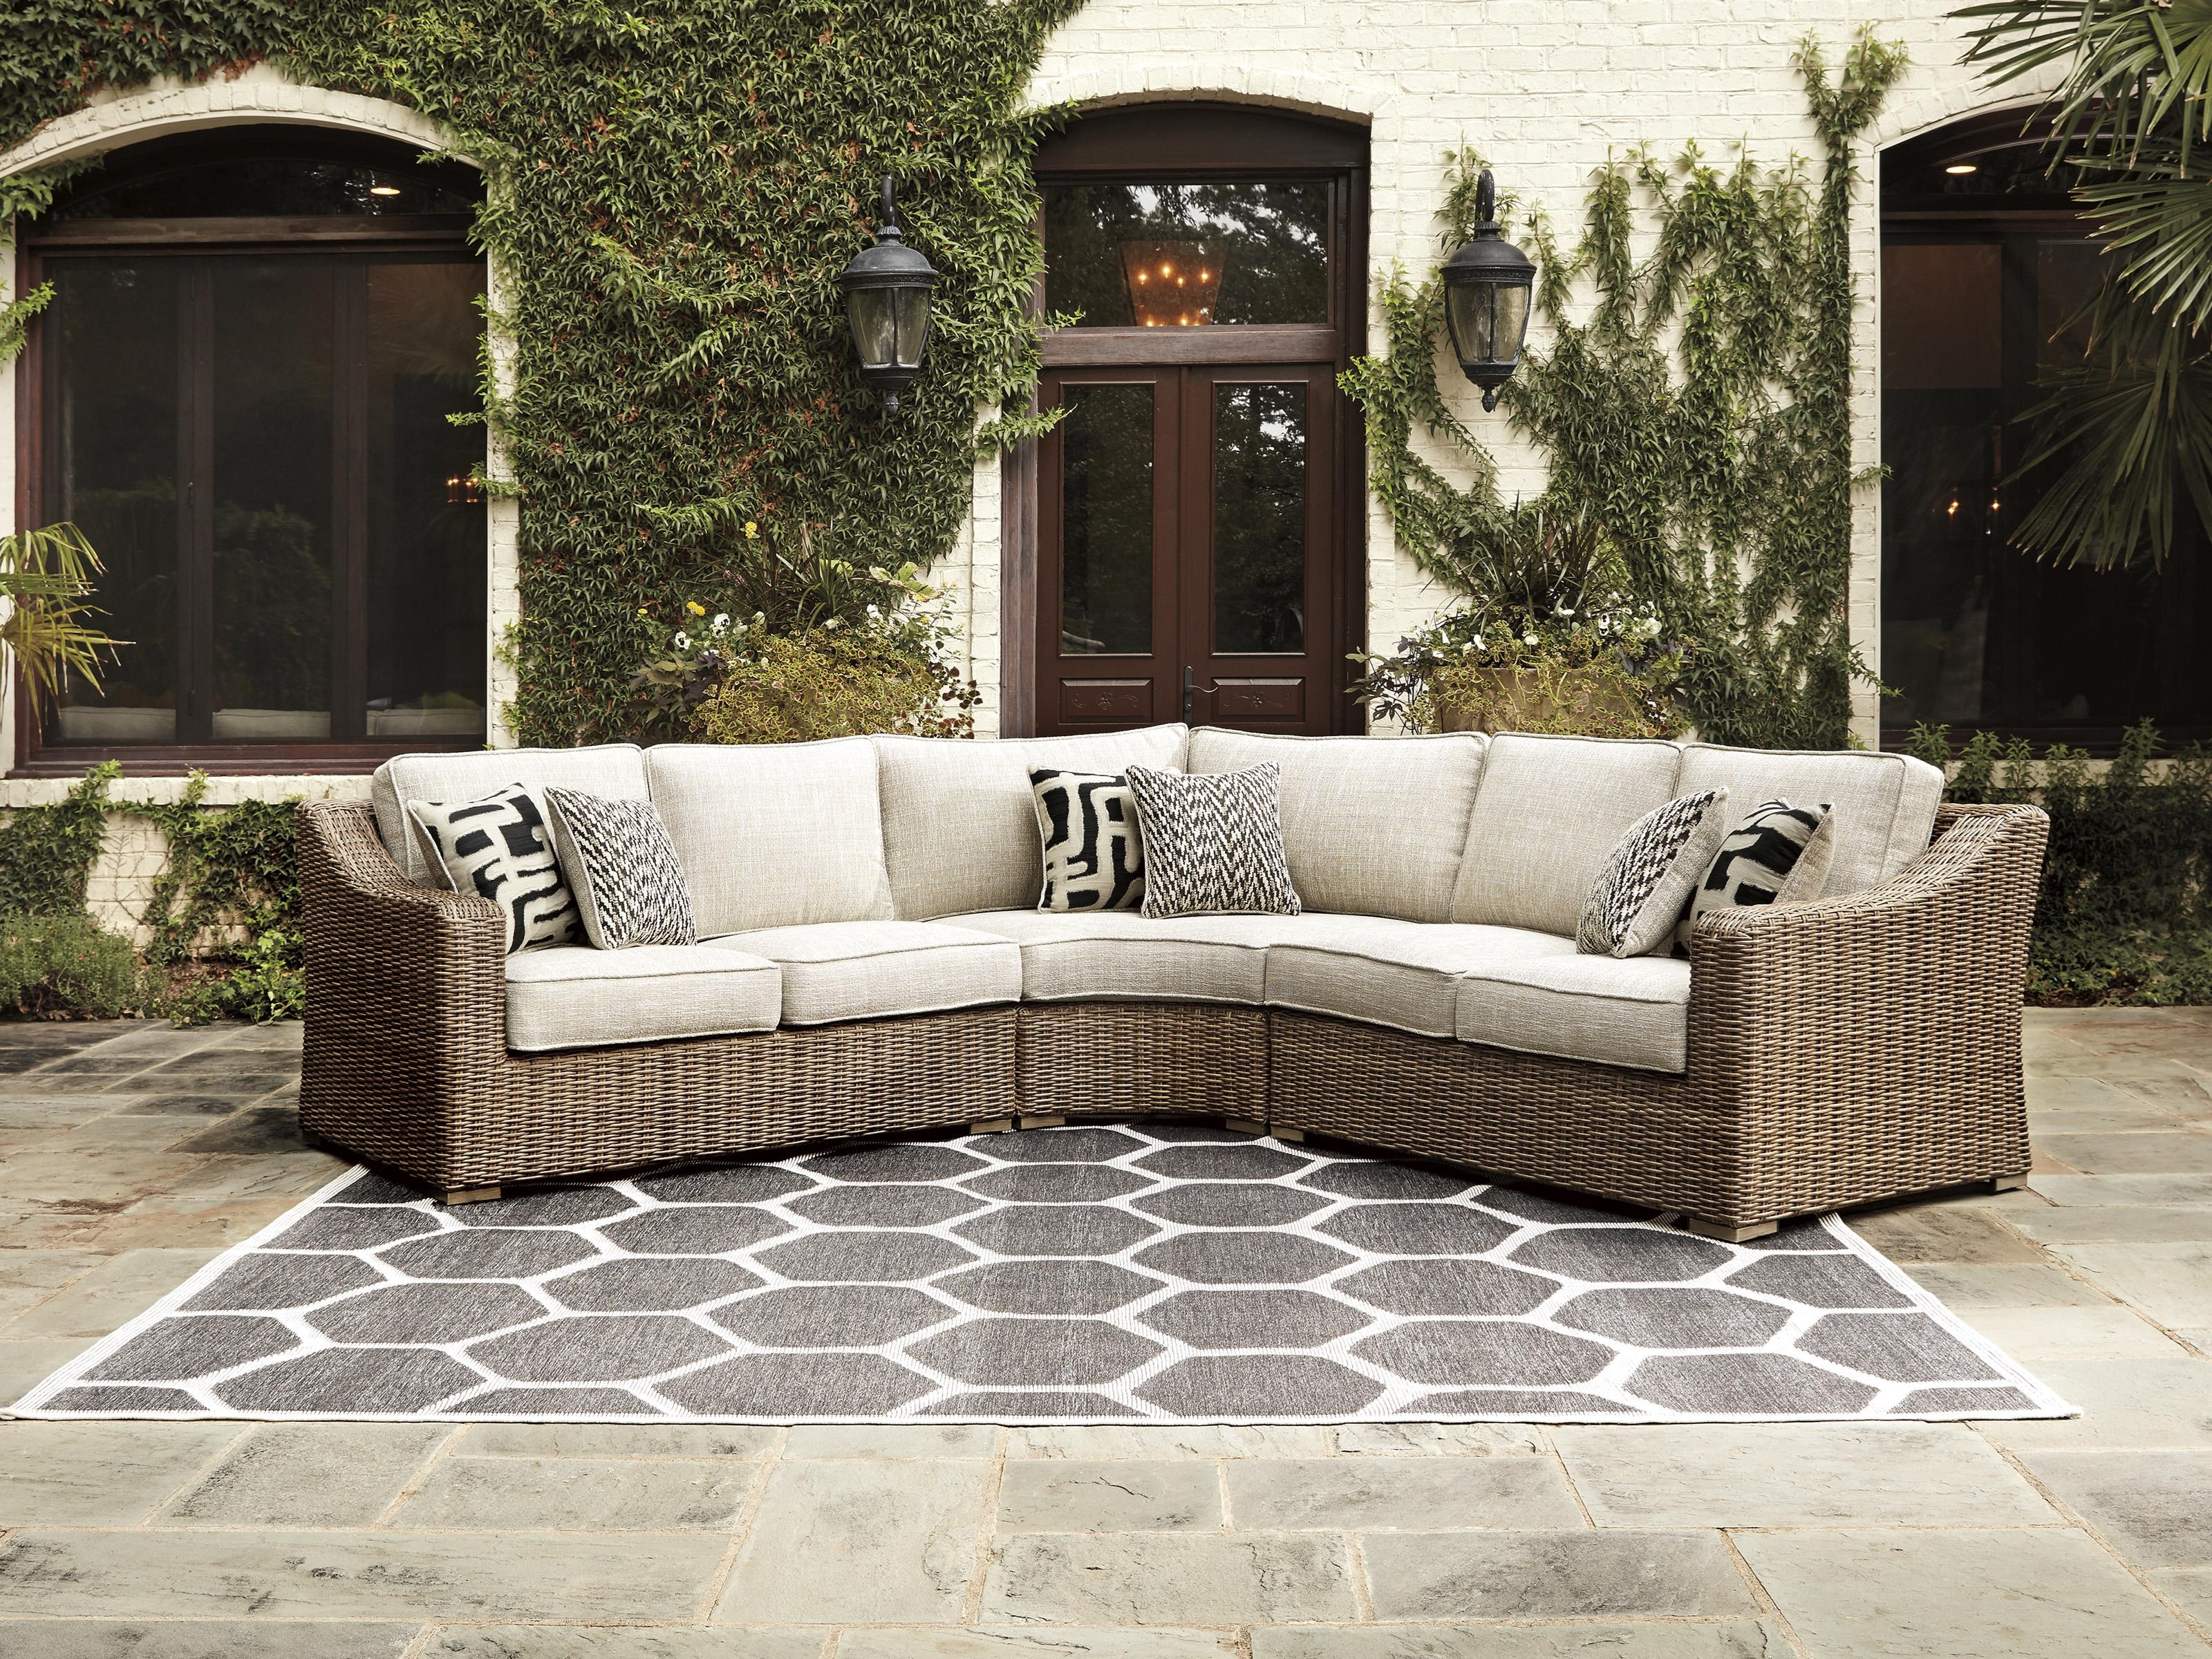 Beachcroft 3 Piece Outdoor Sectional by Signature Design by Ashley at Dream Home Interiors